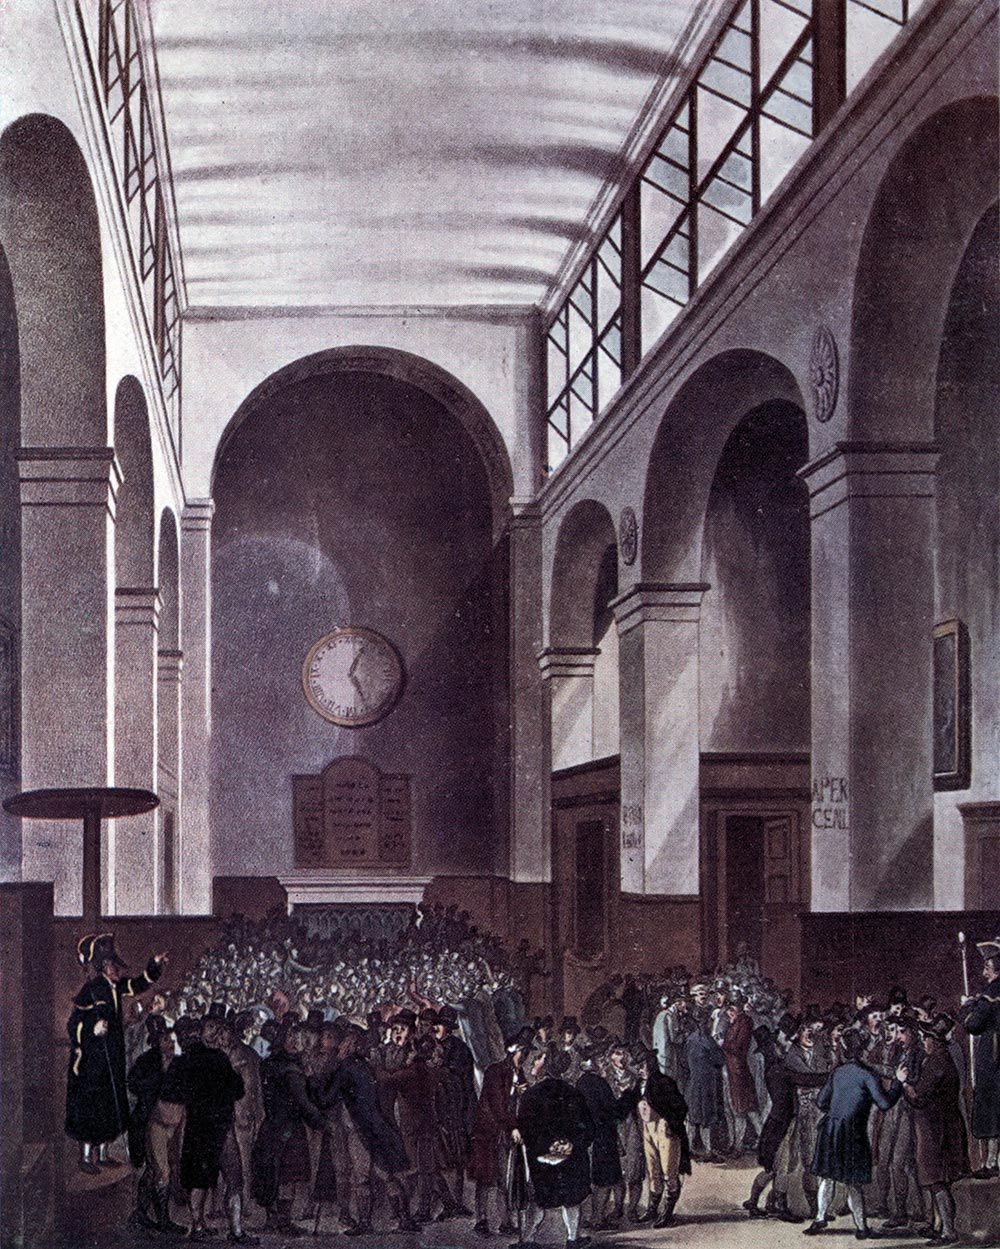 London stock exchange 1810